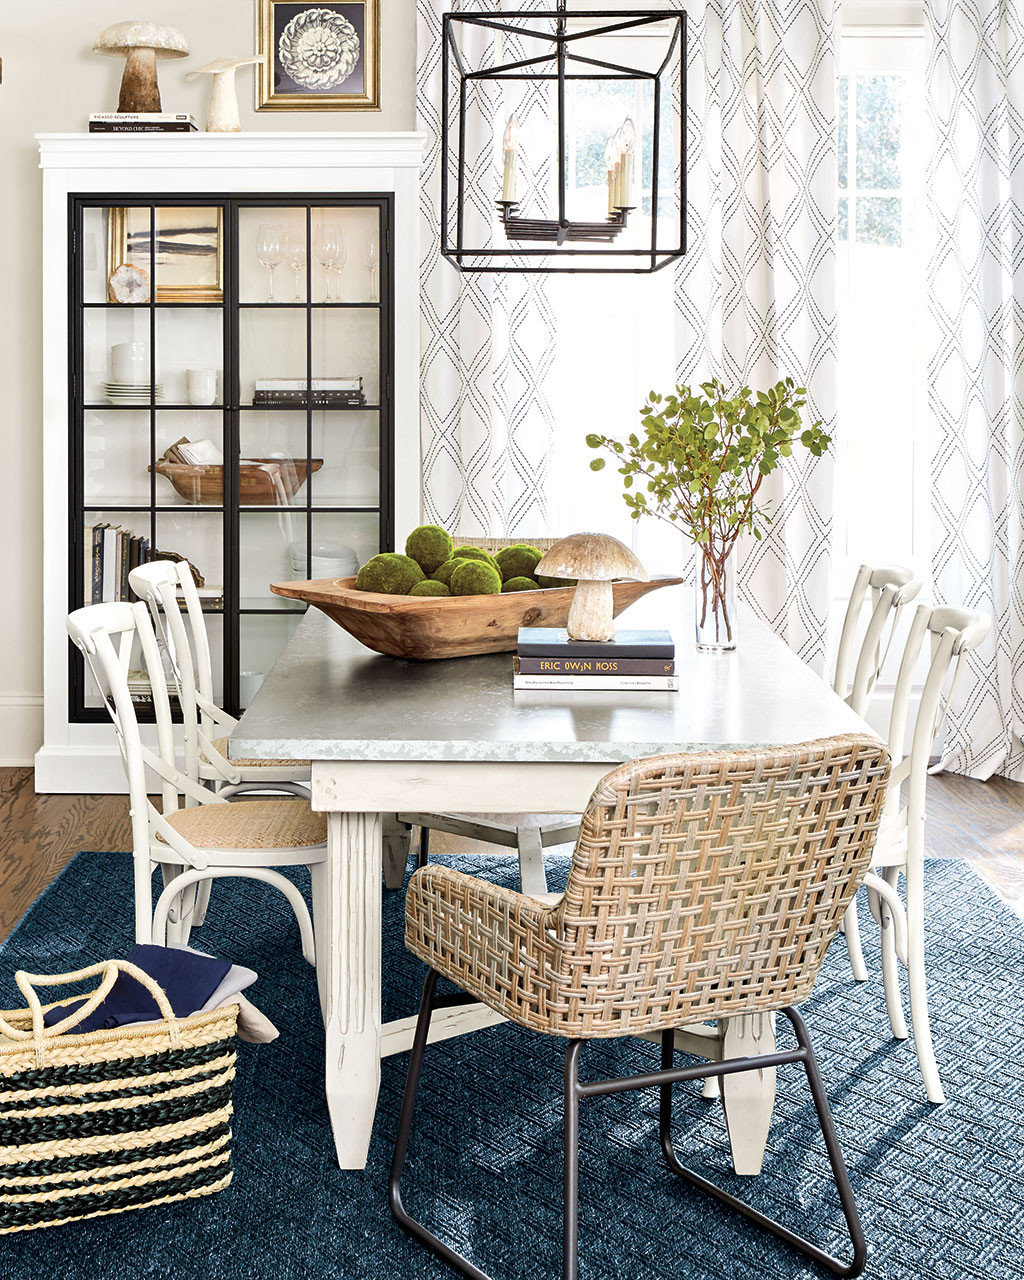 captiva dining room furniture inspirational stylecraft accent replacing outdoor cushions show you how measure round top table half moon end white and wood nest tables armless